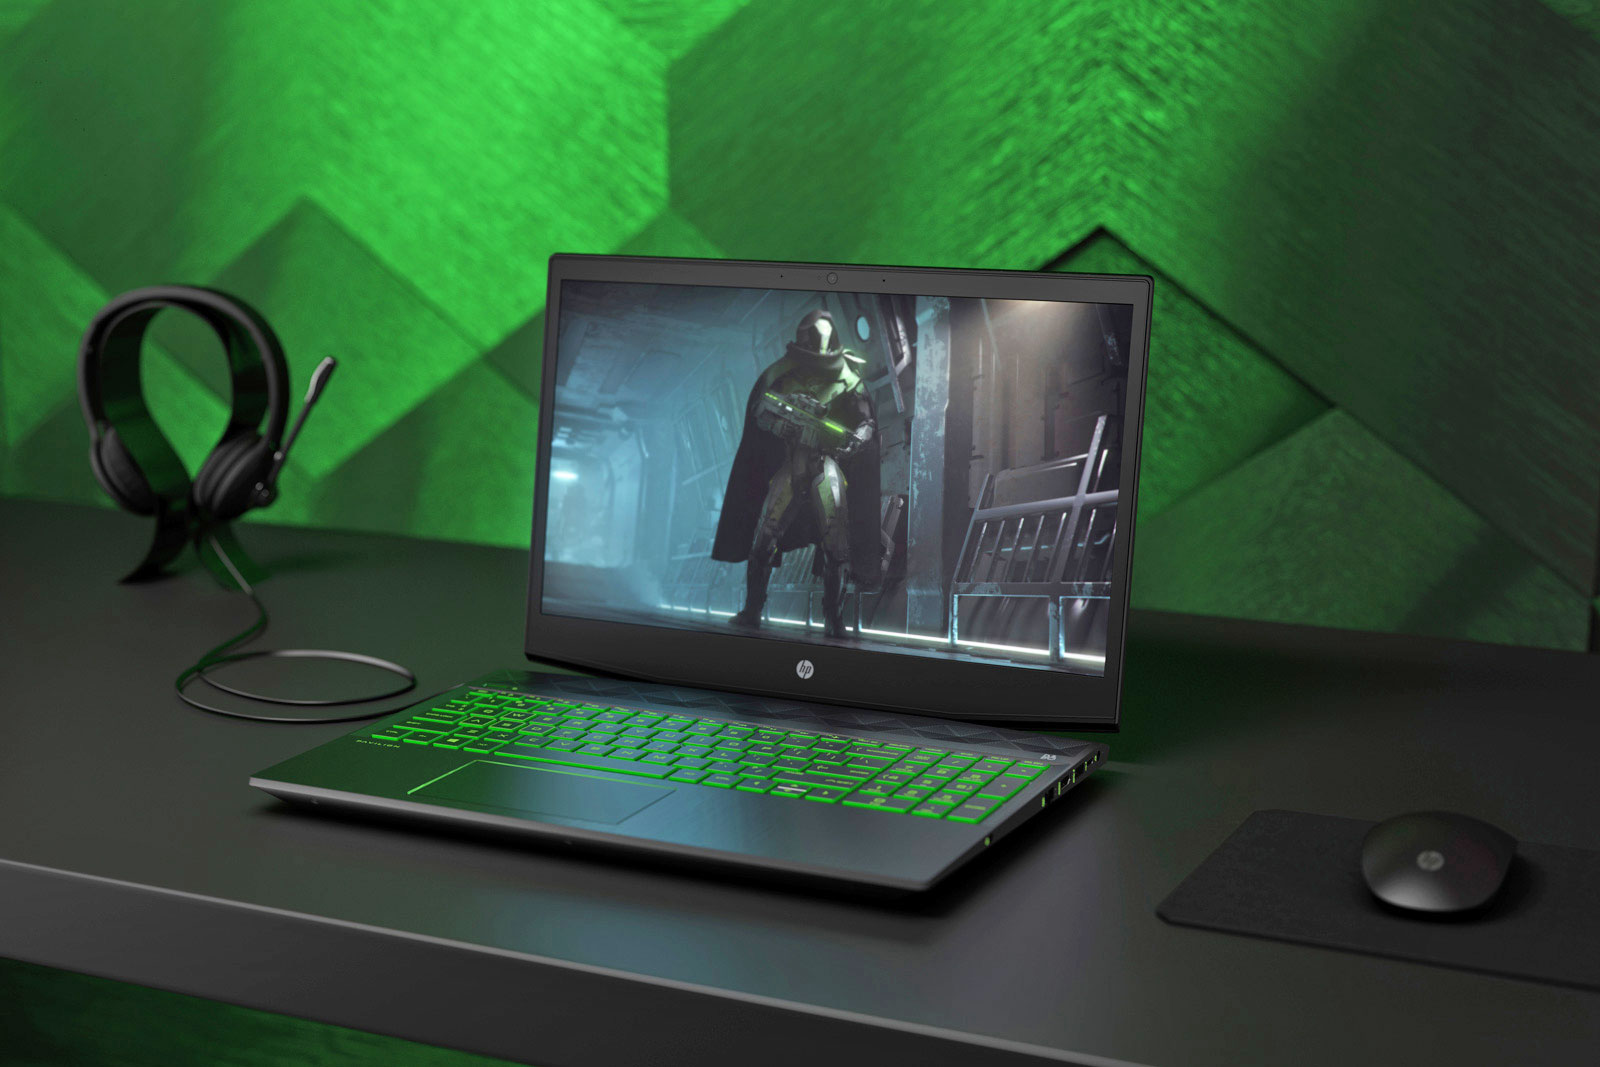 Hp S Latest Pavilion Pcs Are Built For Gamers On A Budget